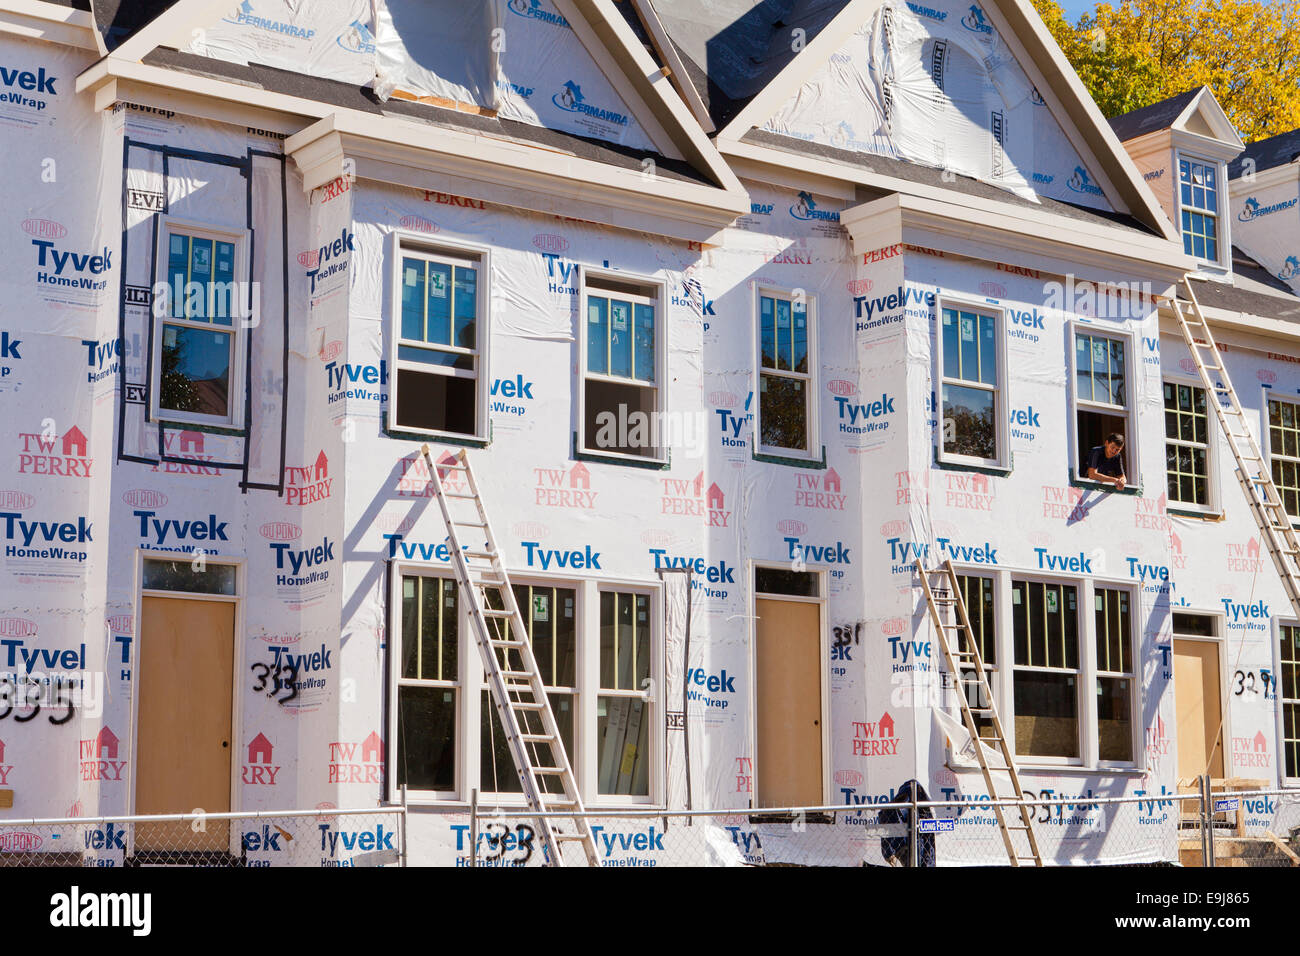 Tyvek Wrap High Resolution Stock Photography And Images Alamy